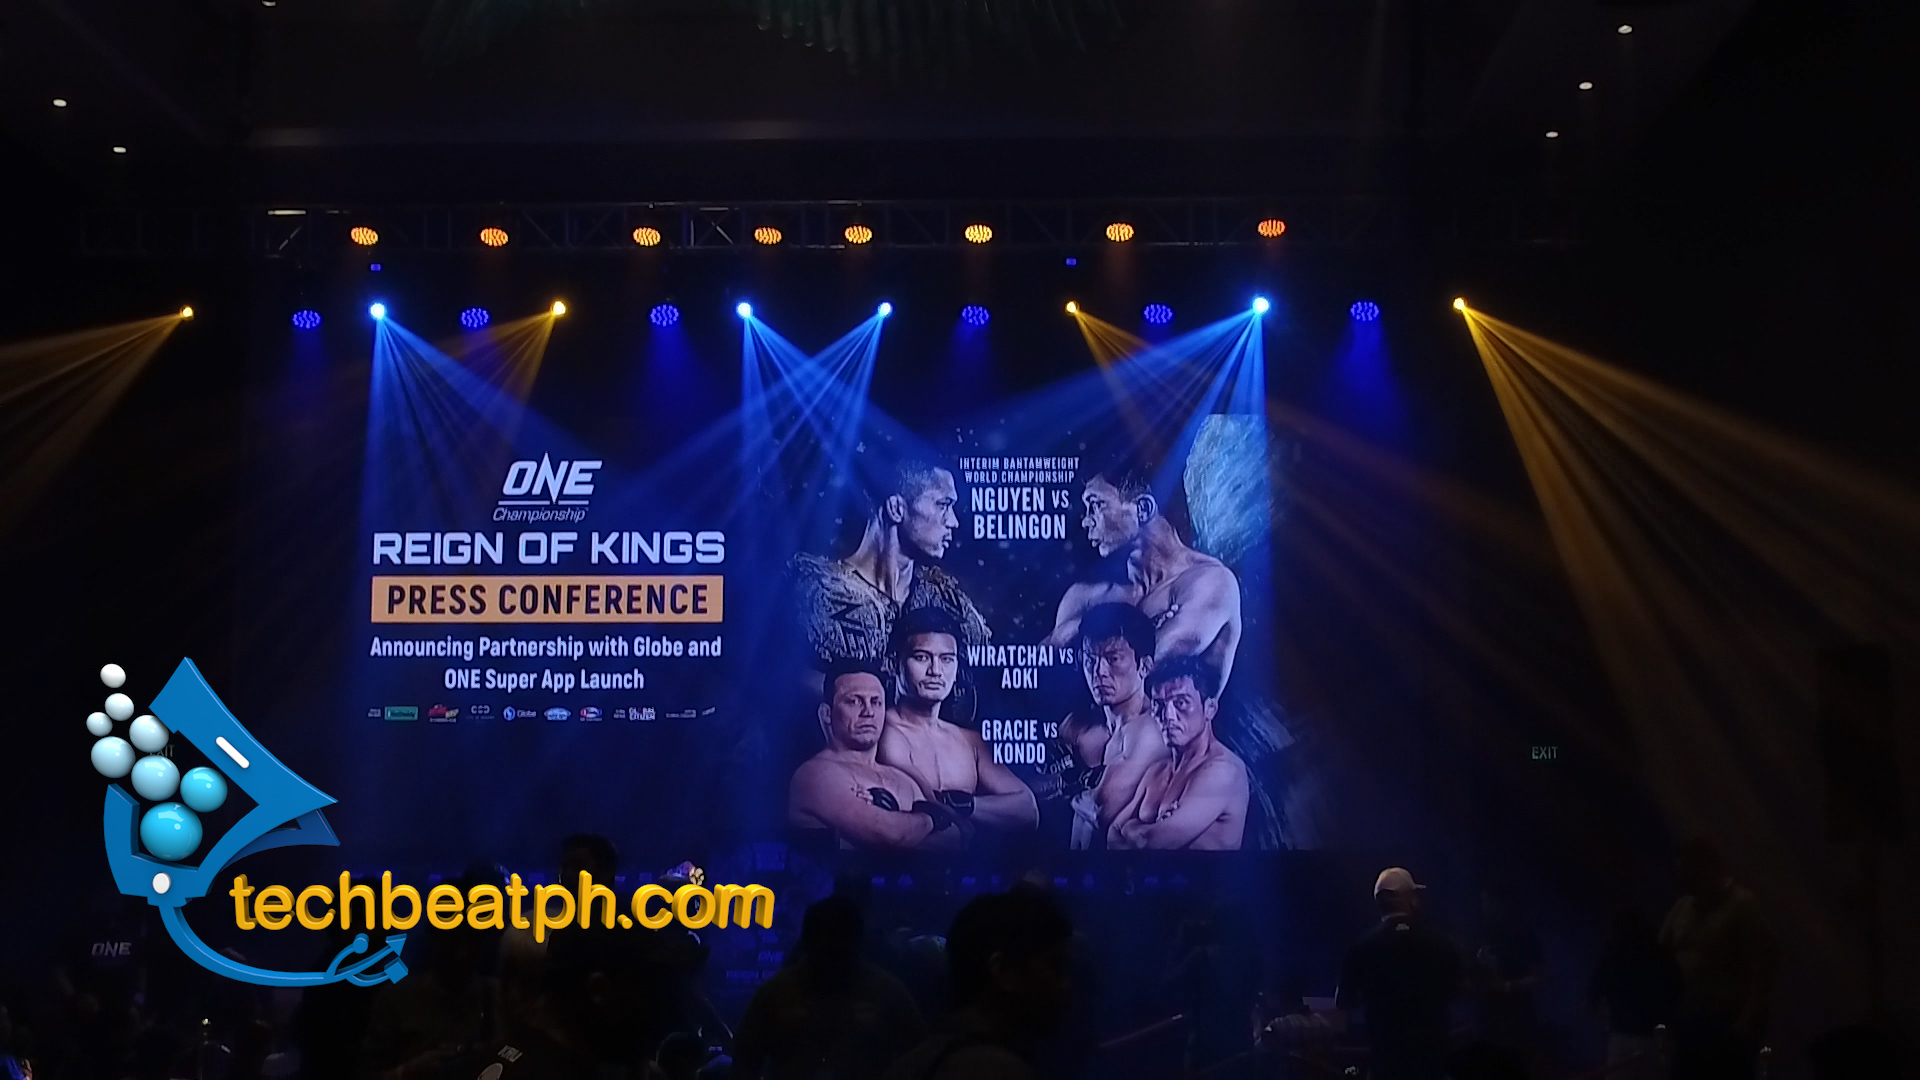 One Championship: Reign of Kings